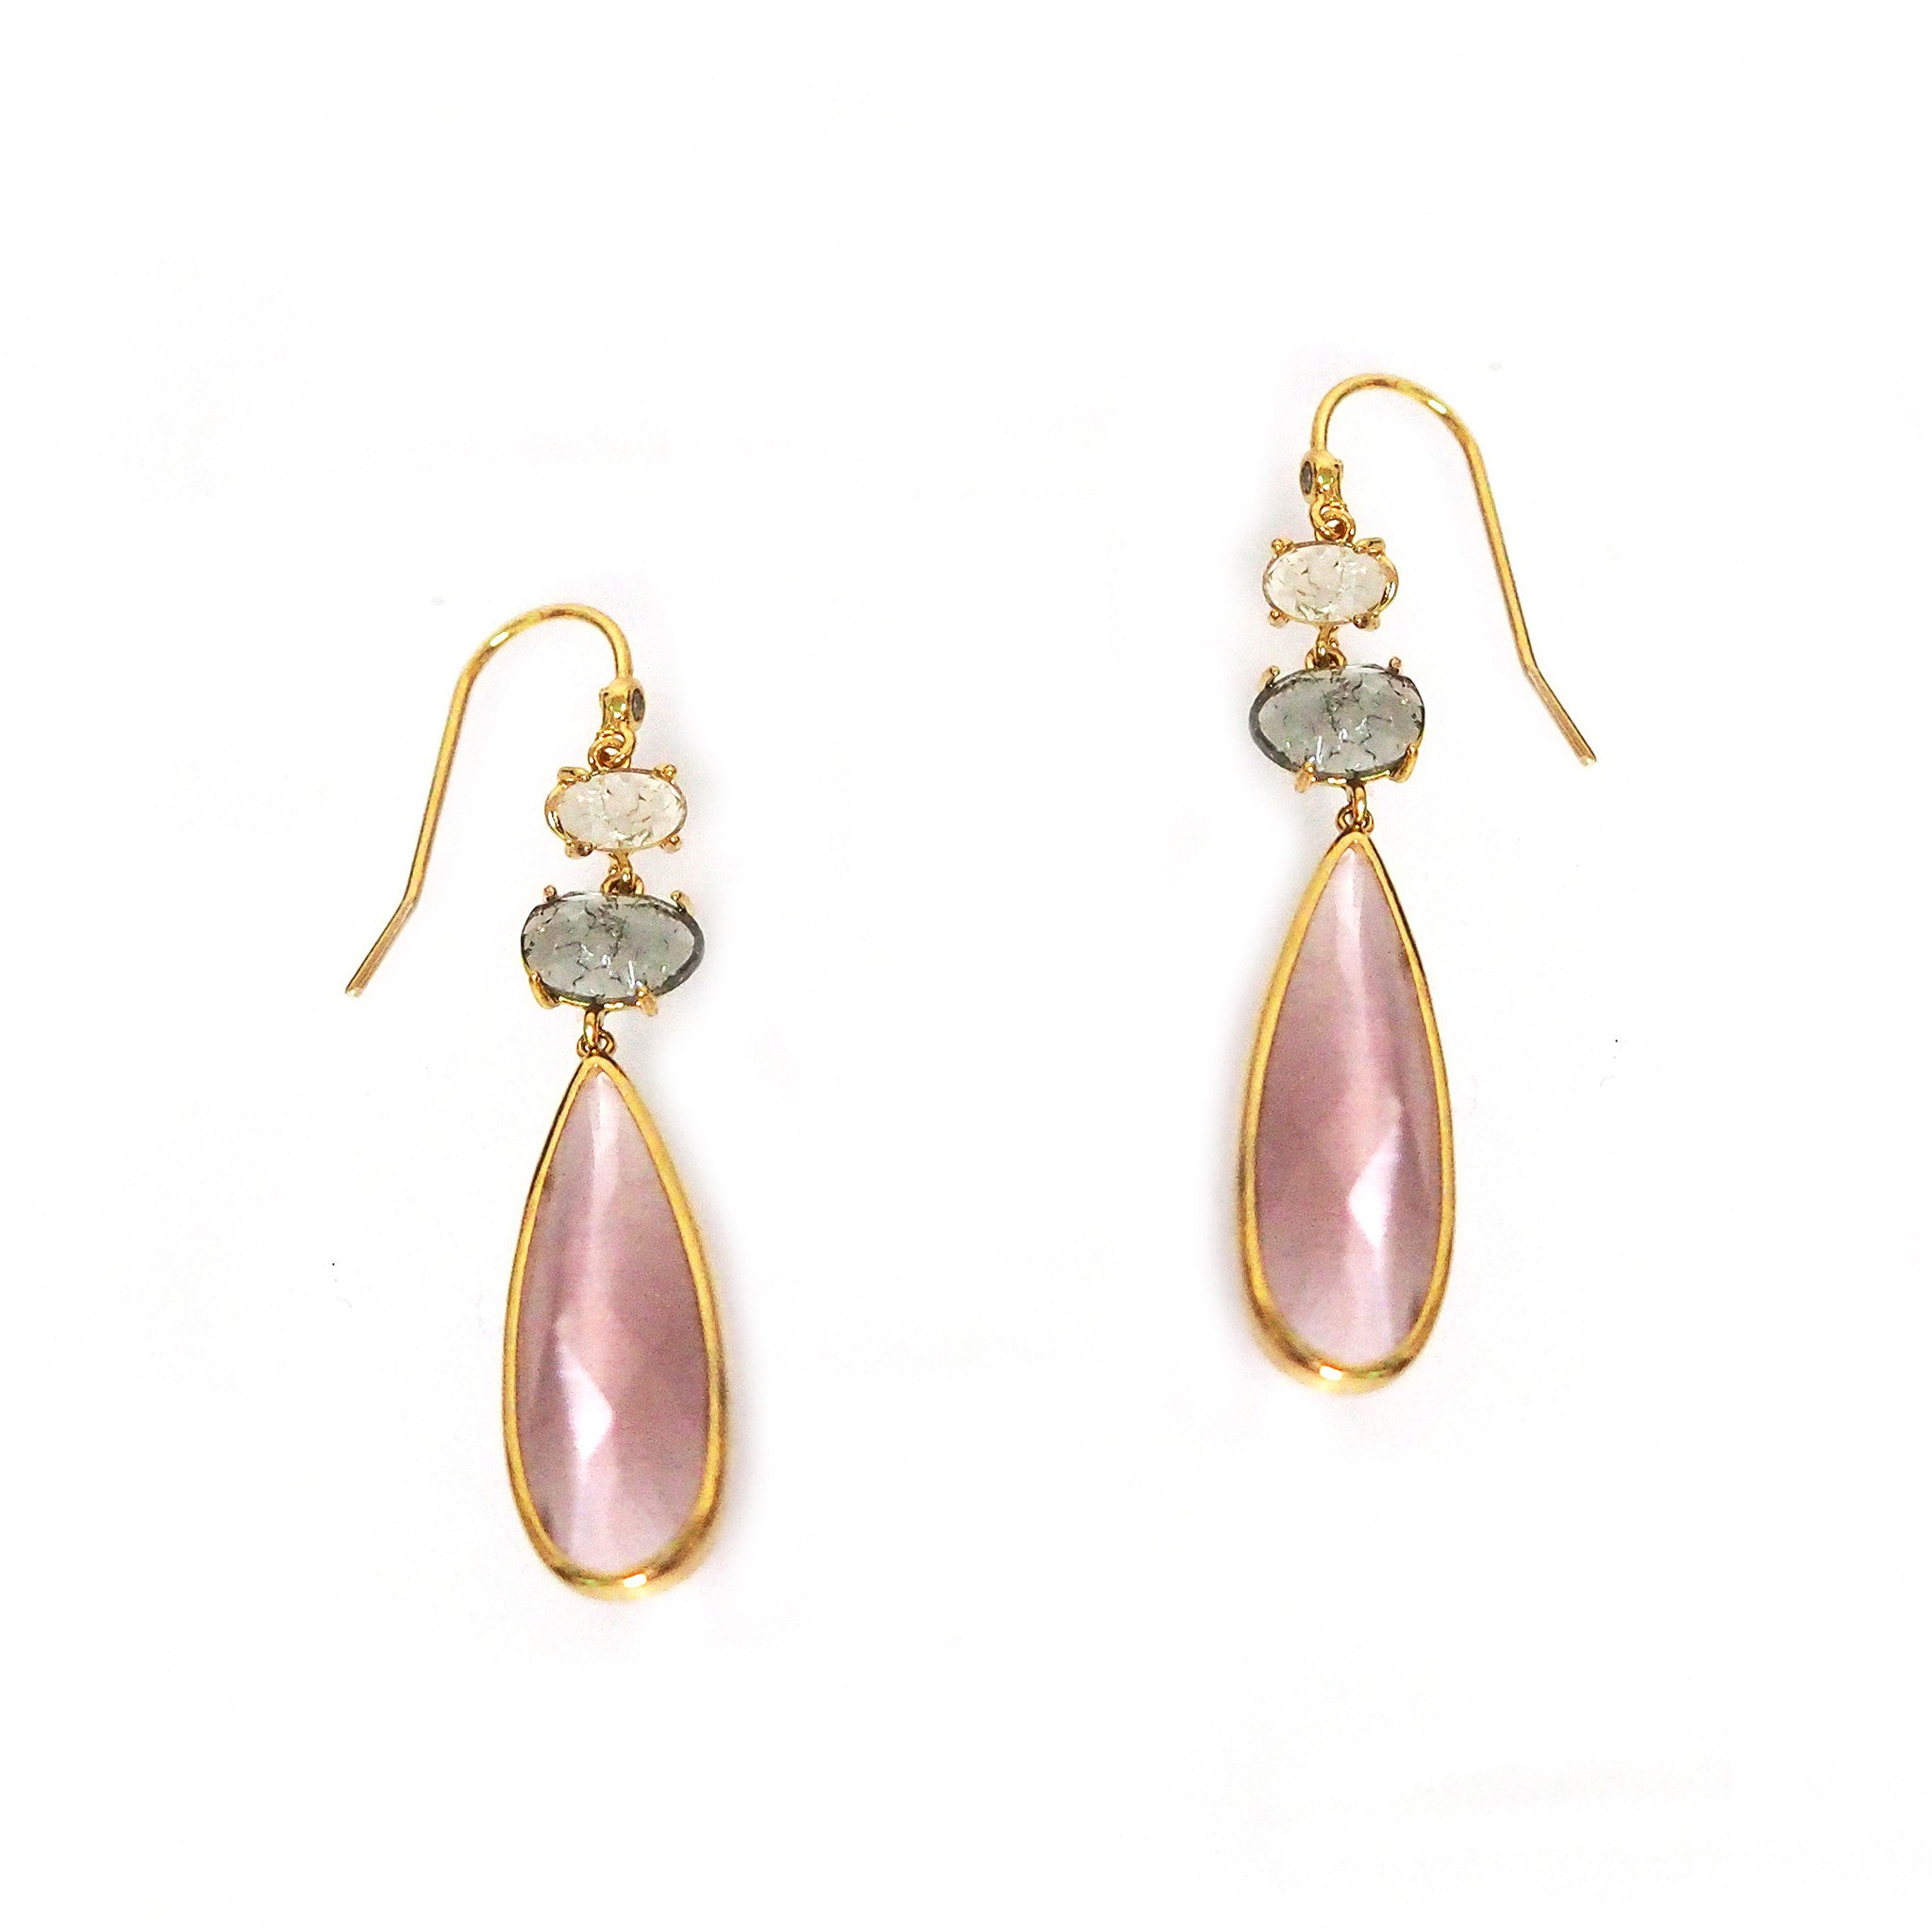 hoop pt studded de earrings pink products smallhoop gem drop er smhoopgem daria koning earring orbit small